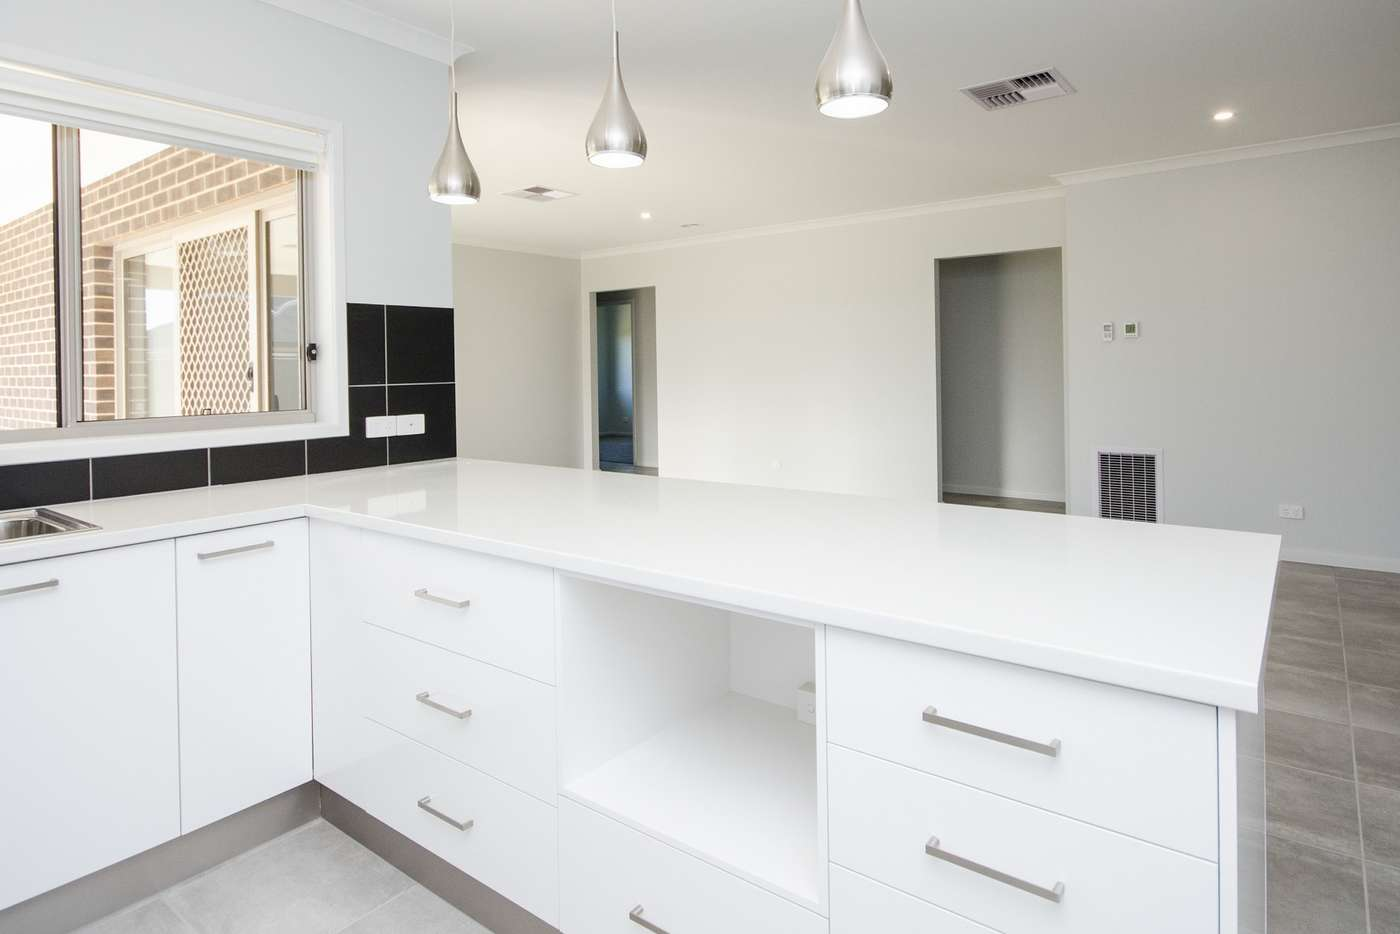 Seventh view of Homely house listing, 24 Strickland Street, Wodonga VIC 3690